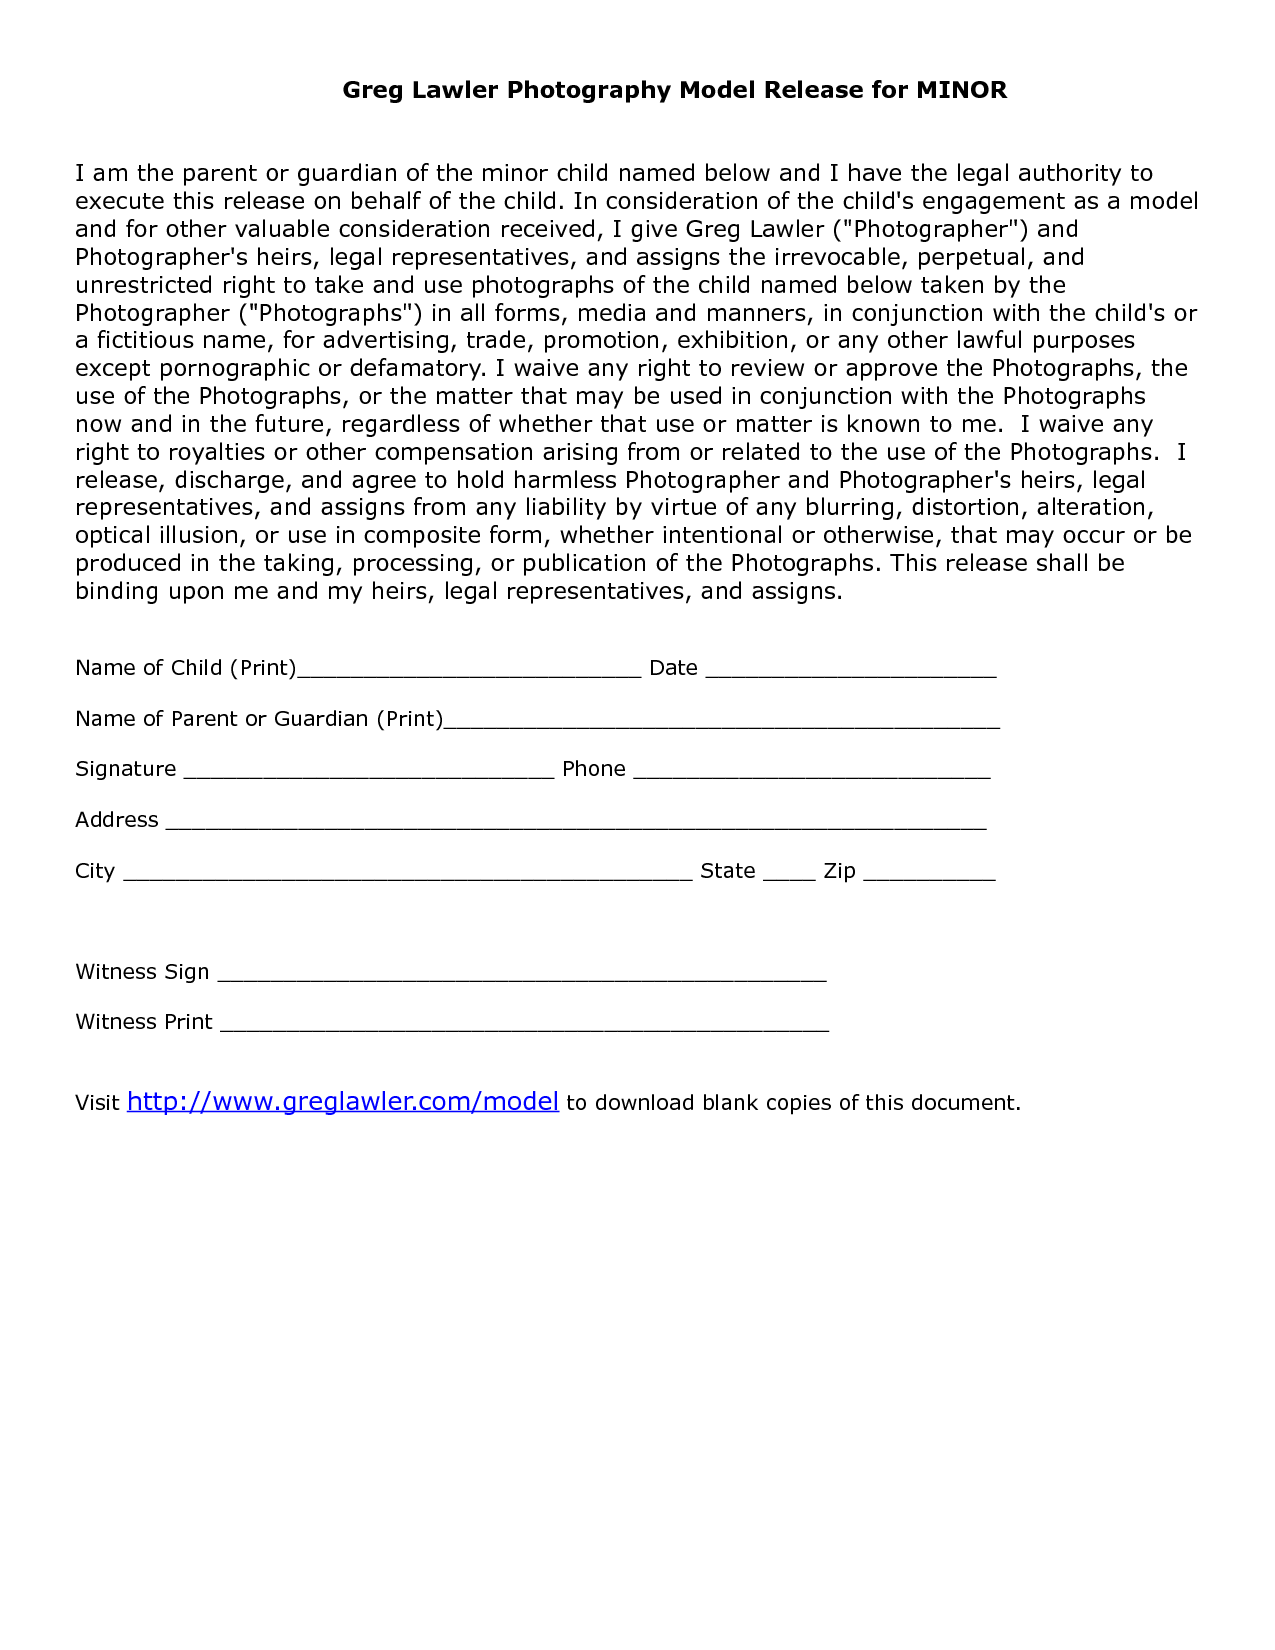 Minor model release form template photography ideas for Photography permission form template